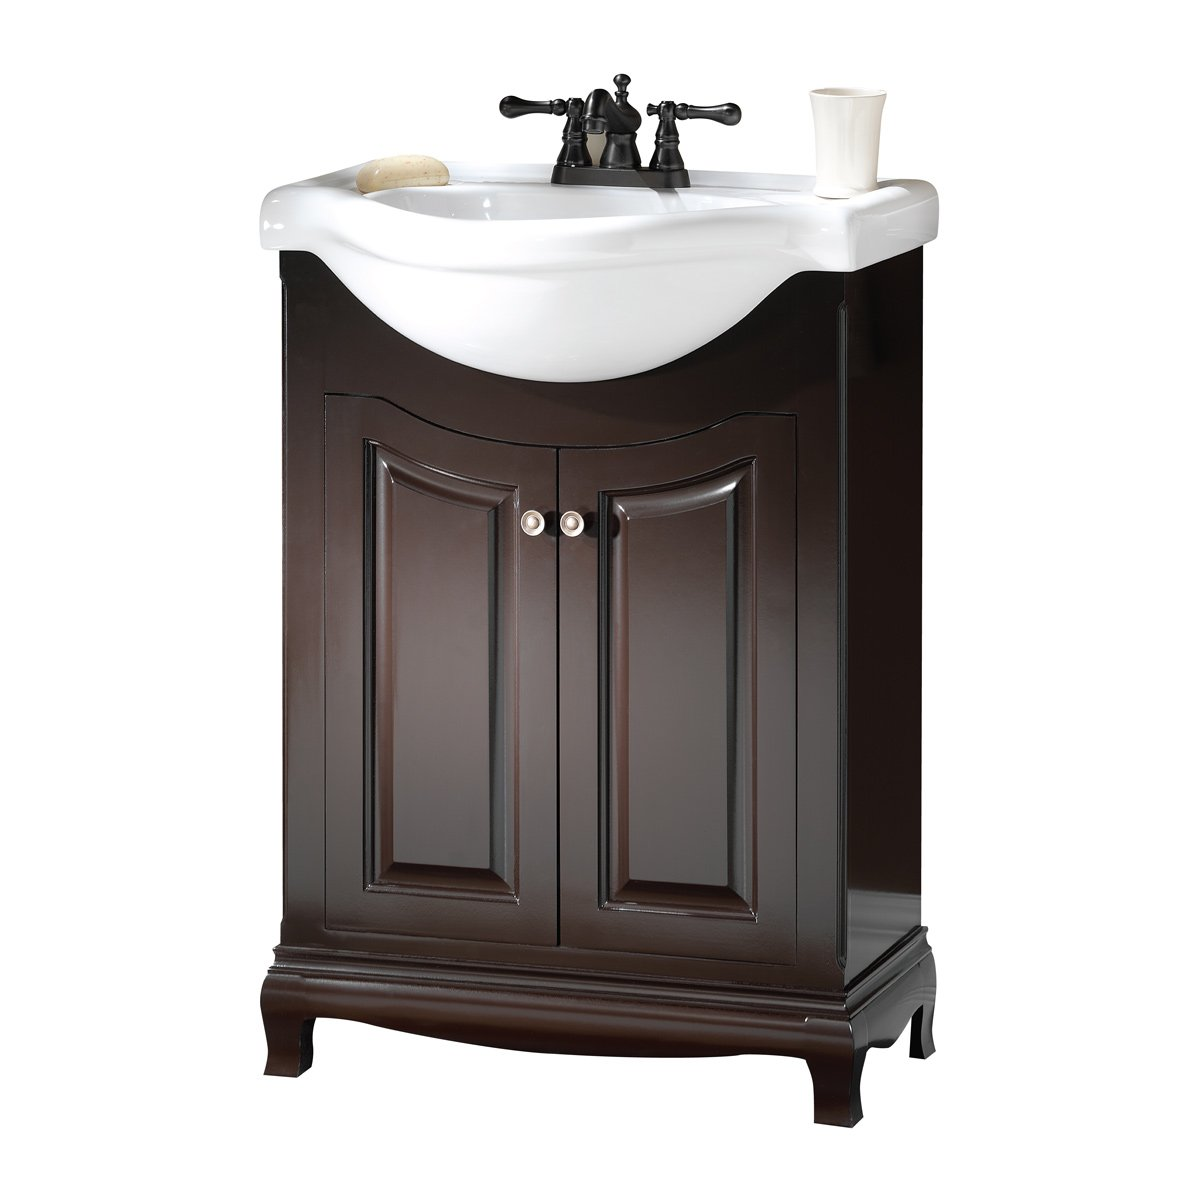 Foremost PAEA2534 Palermo Euro Bath Vanity with China Top - Bathroom ...